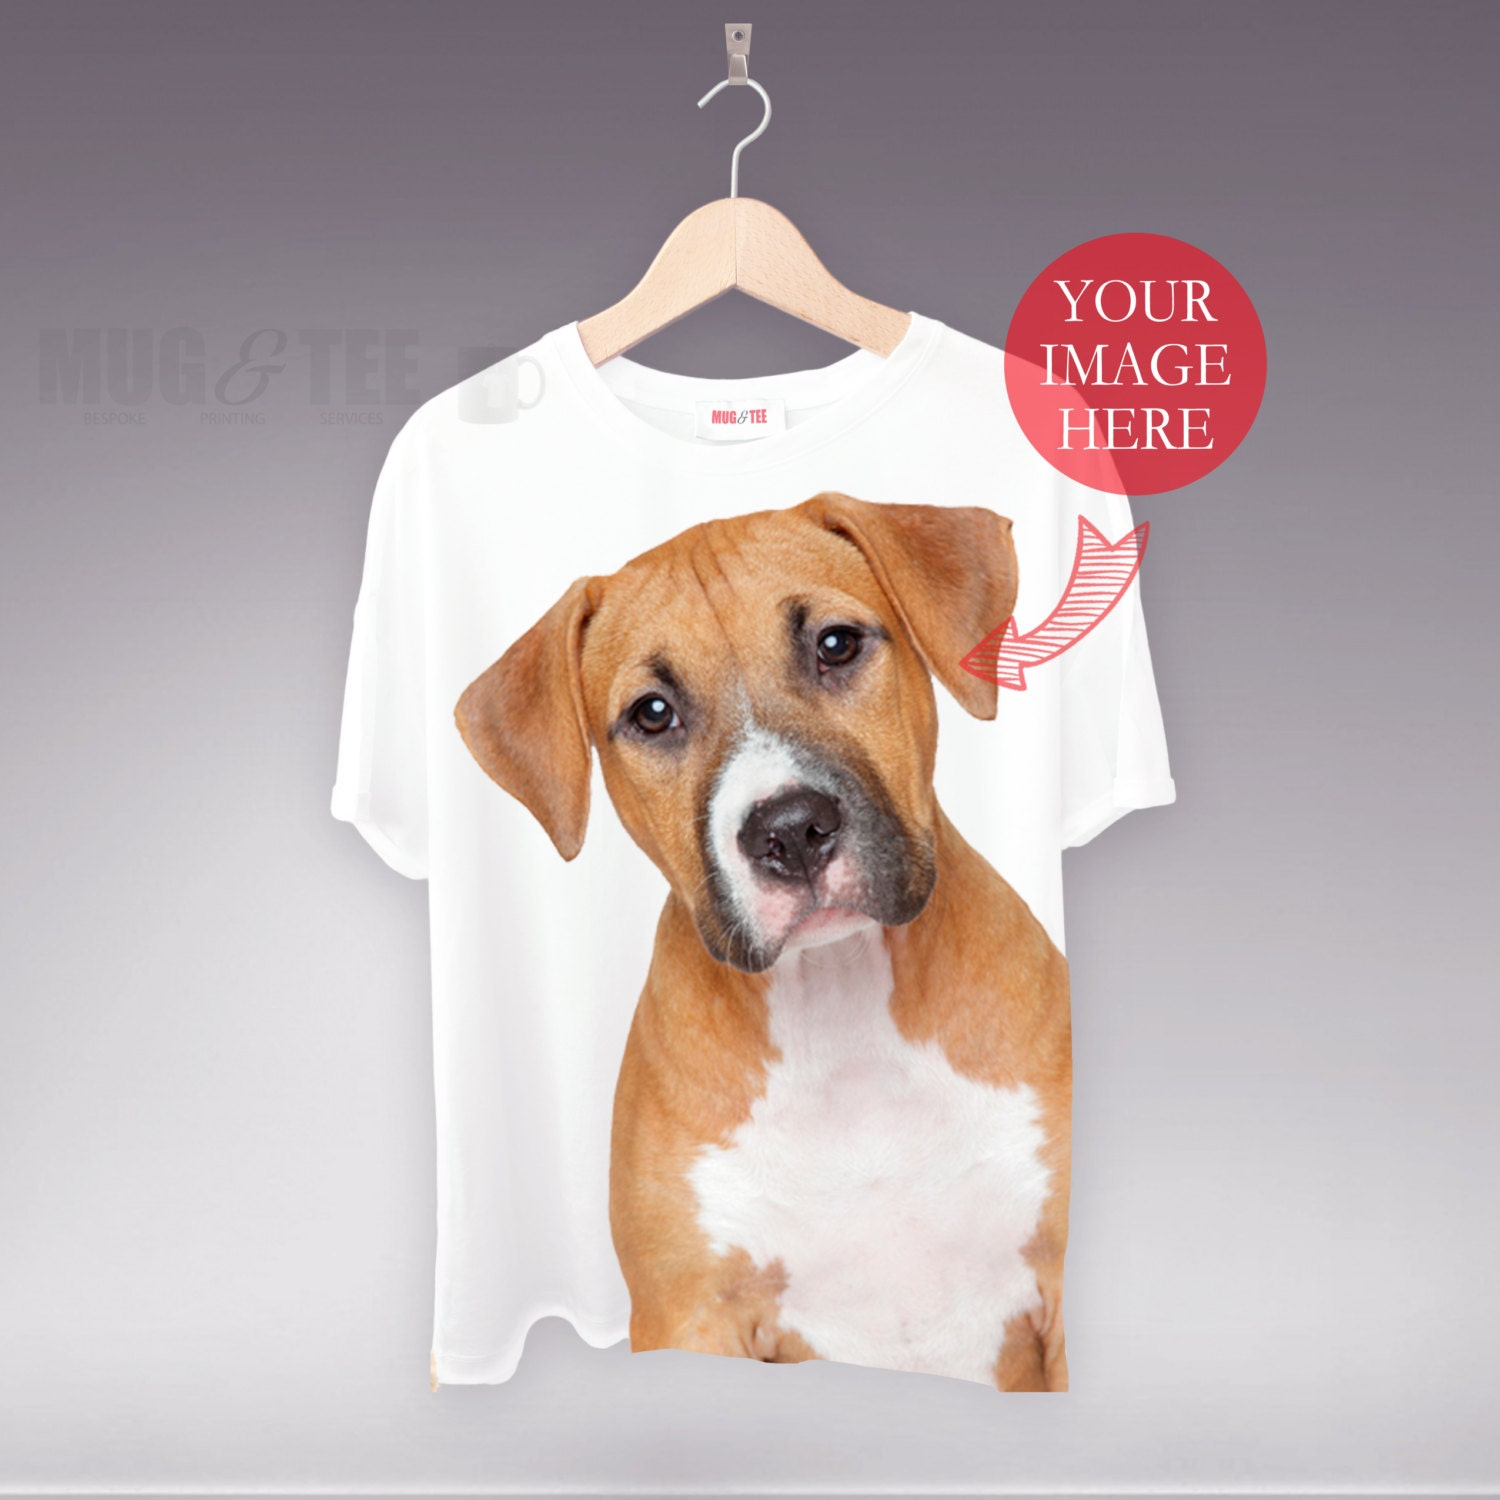 Personalized T Shirt Pet T Shirt Print My Pet Dog T Shirt